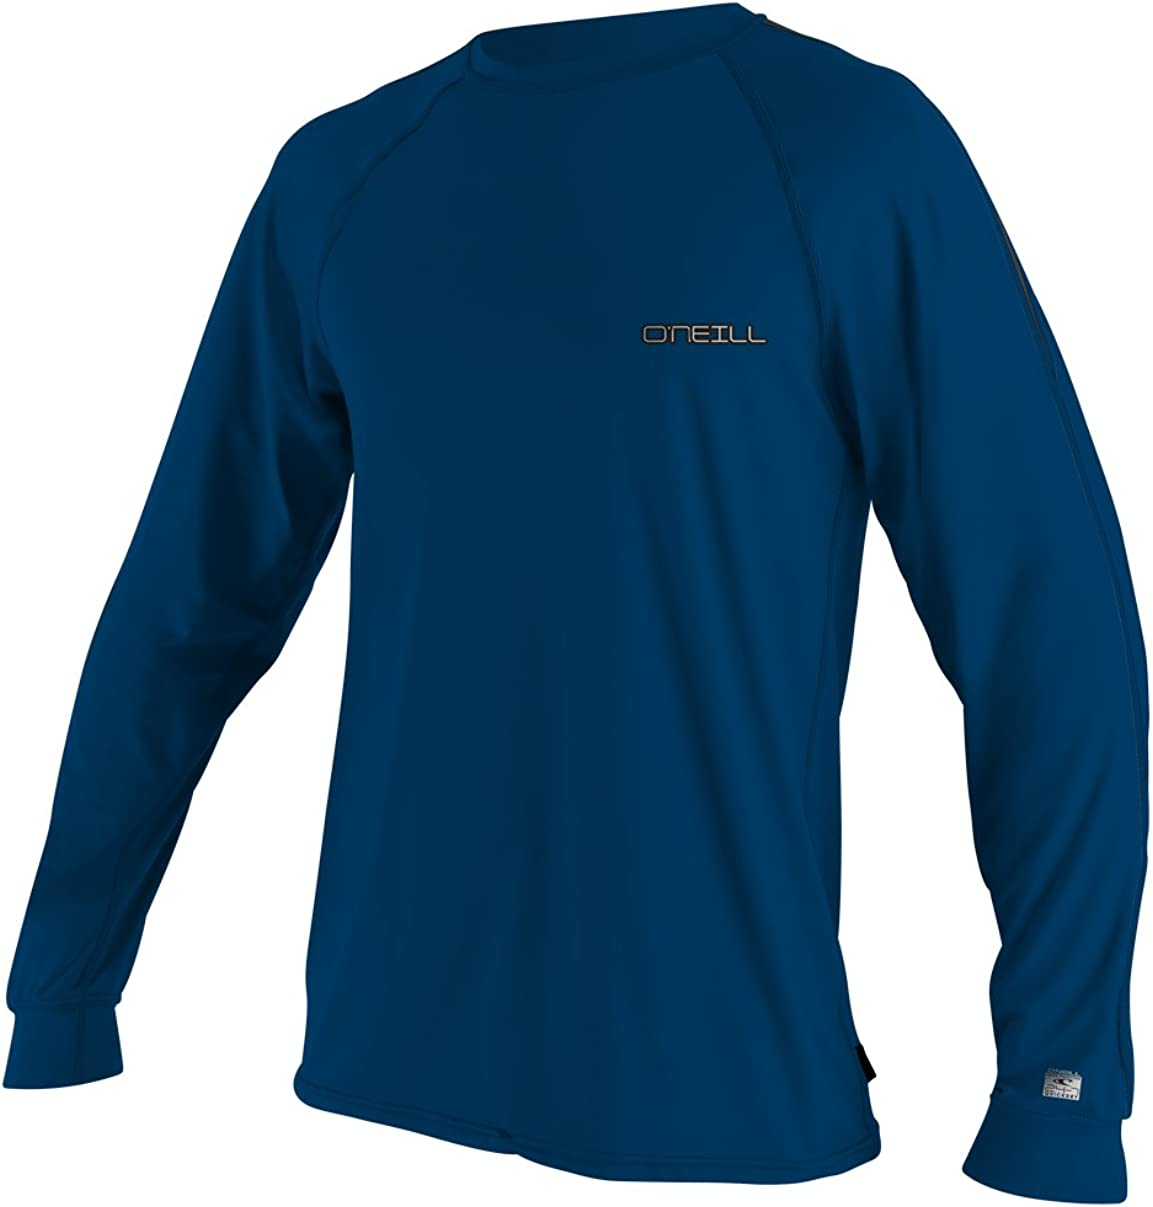 O'Neill Wetsuits Youth 24-7 Tech Long Sleeve Crew Top